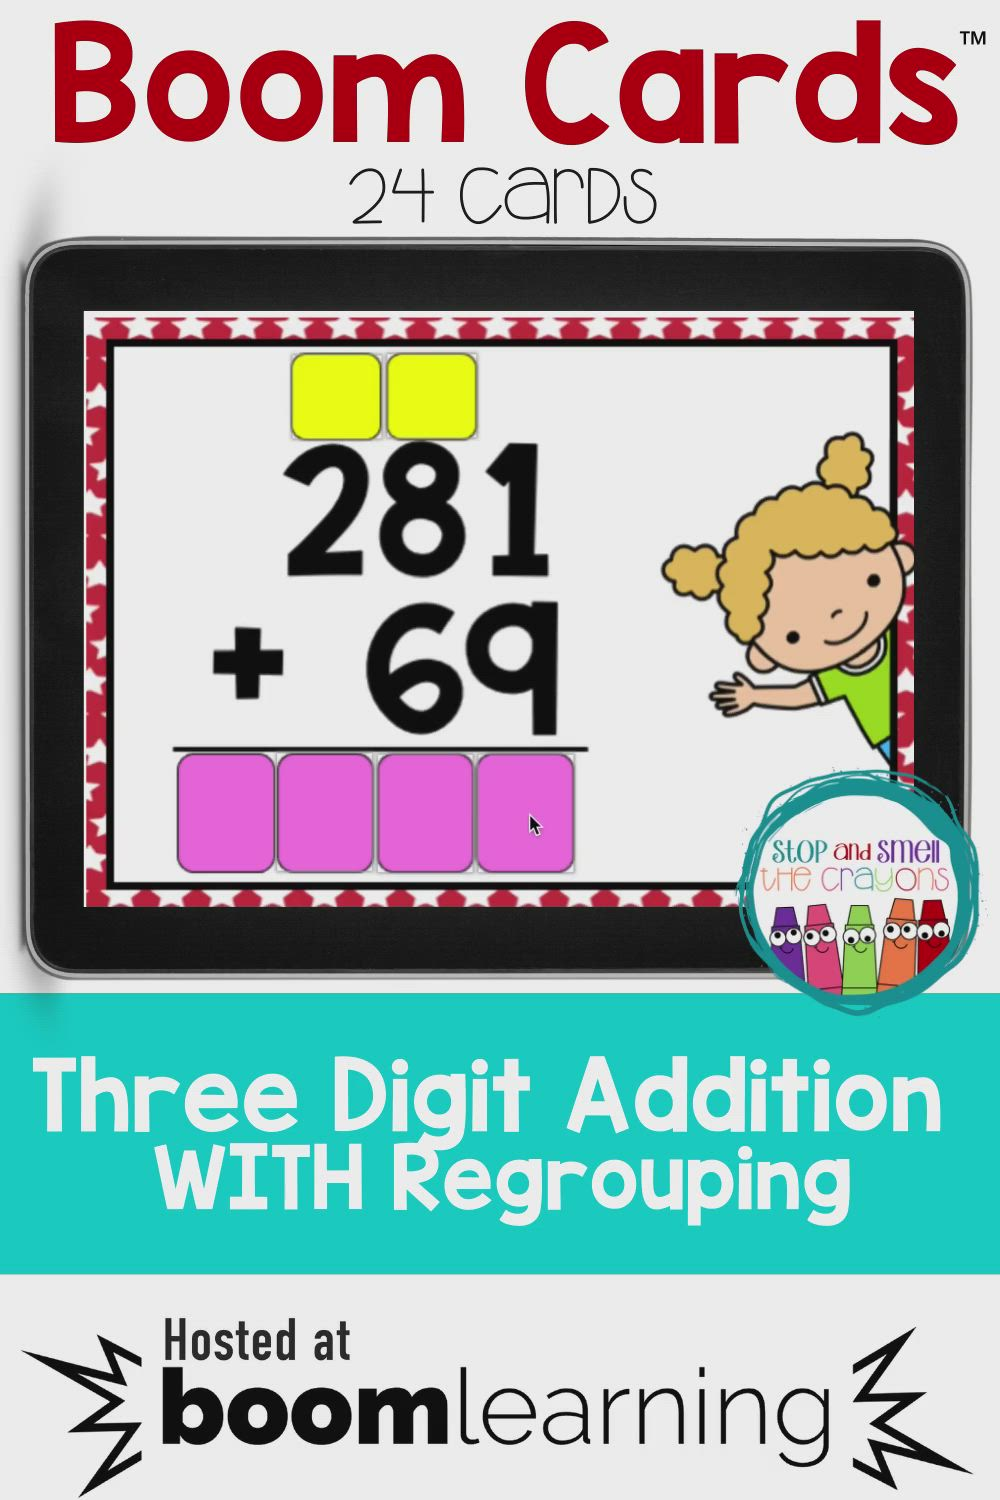 Boom Cards Three Digit Addition With Regrouping Video Video Boom Cards Three Digit Addition With Regrouping Three Digit Addition Addition with regrouping video grade